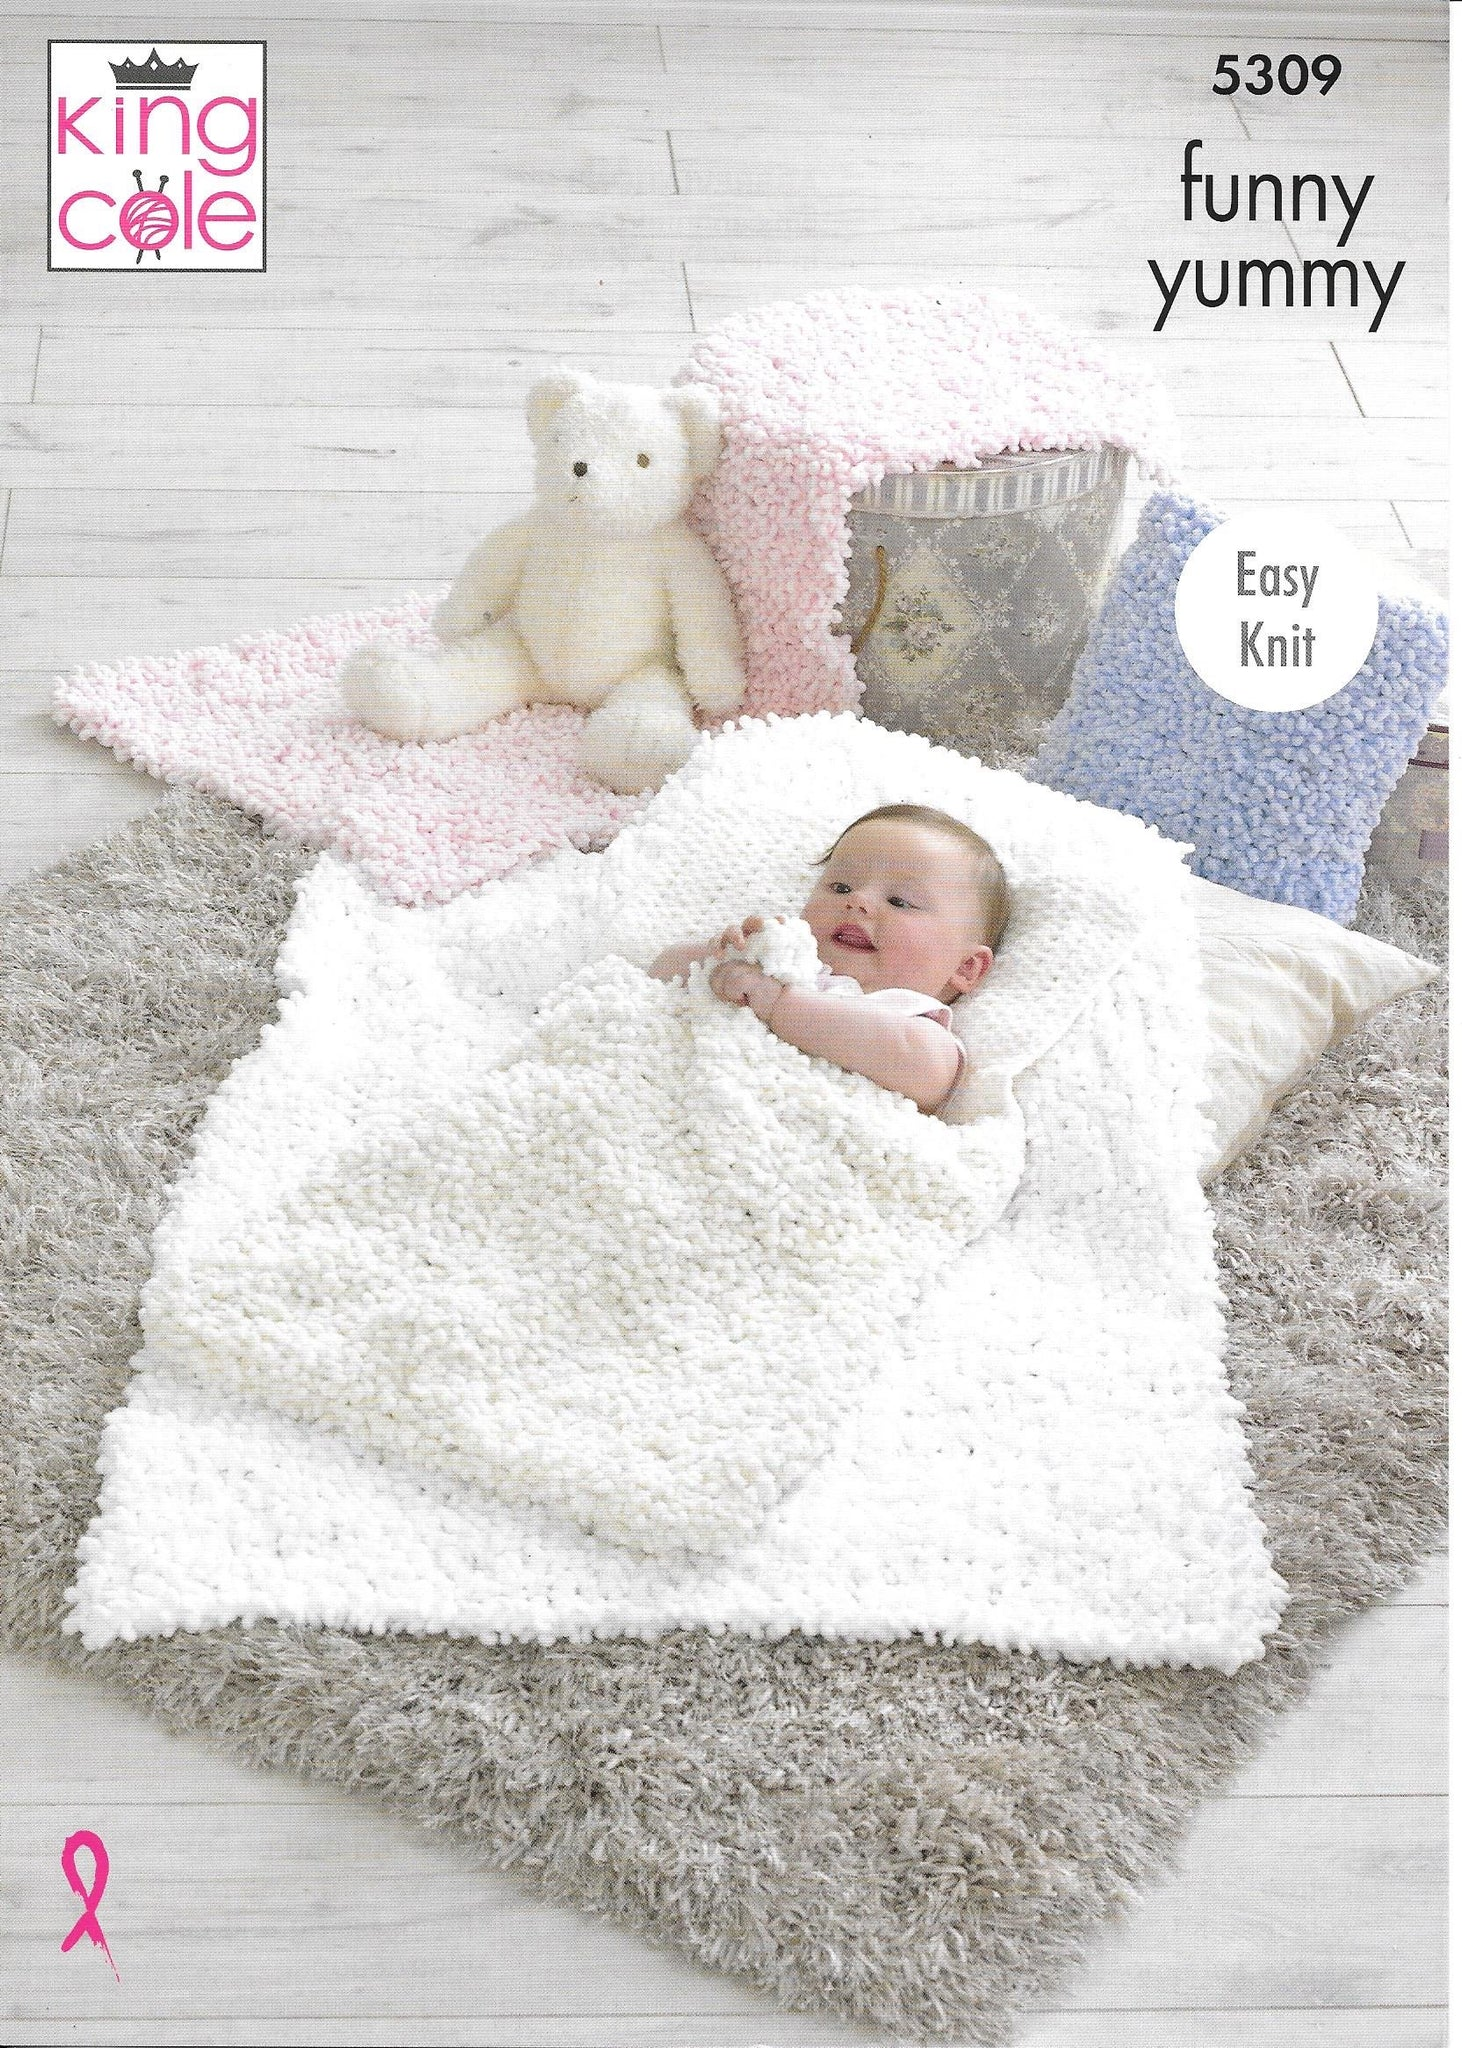 5309 King Cole Funny Yummy cot blanket, pram cover, sleeping bag and cushion knitting pattern